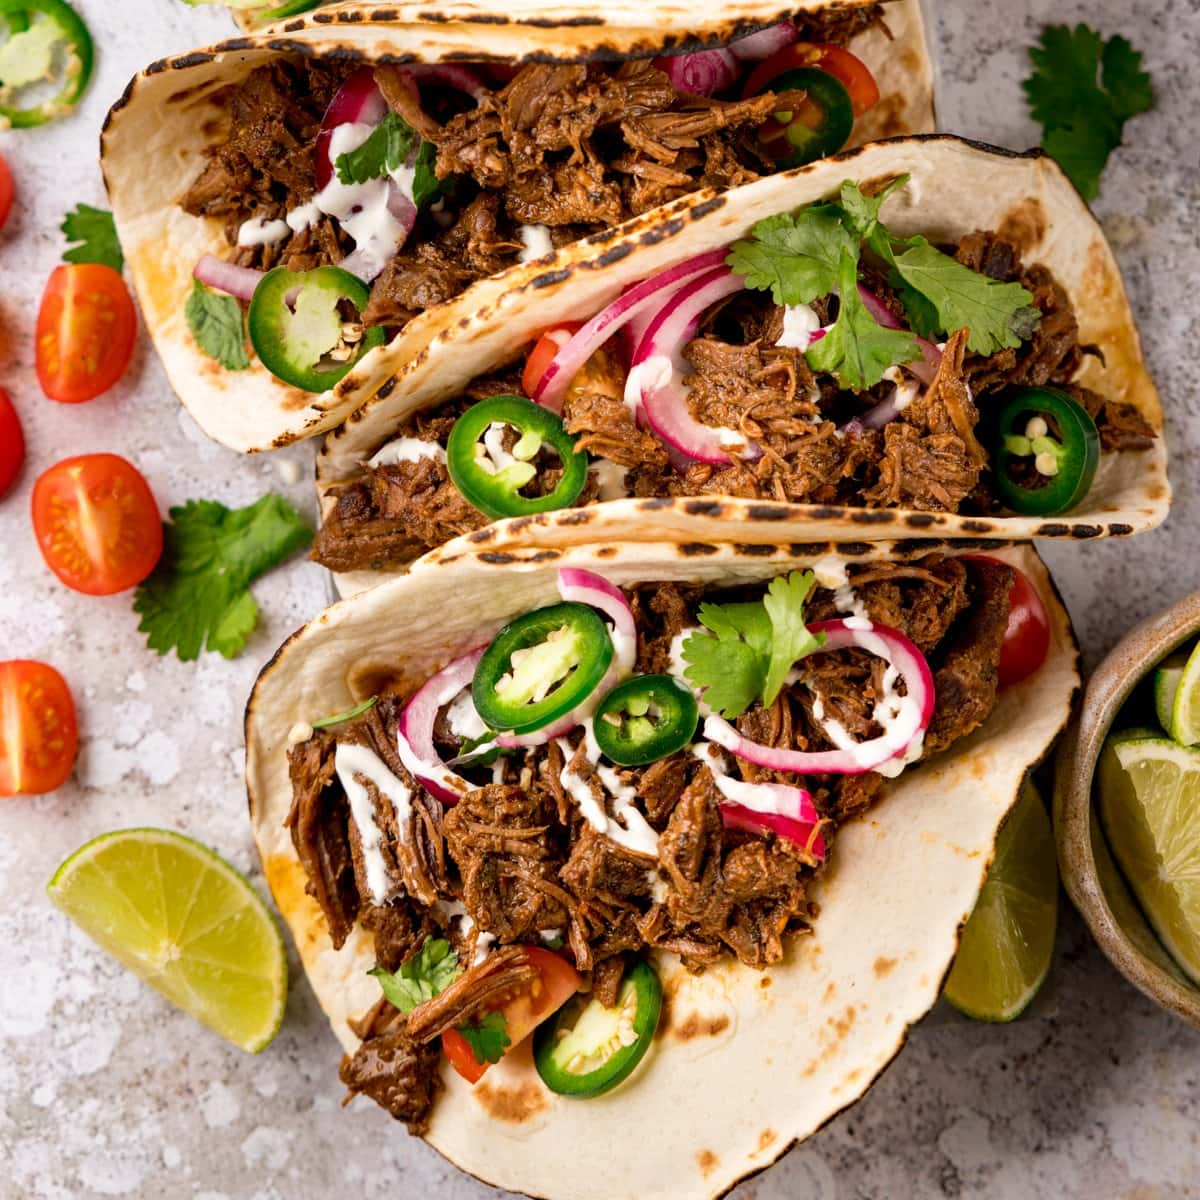 Square image of beef barbacoa on soft tacos topped with red onion and jalapeno slices